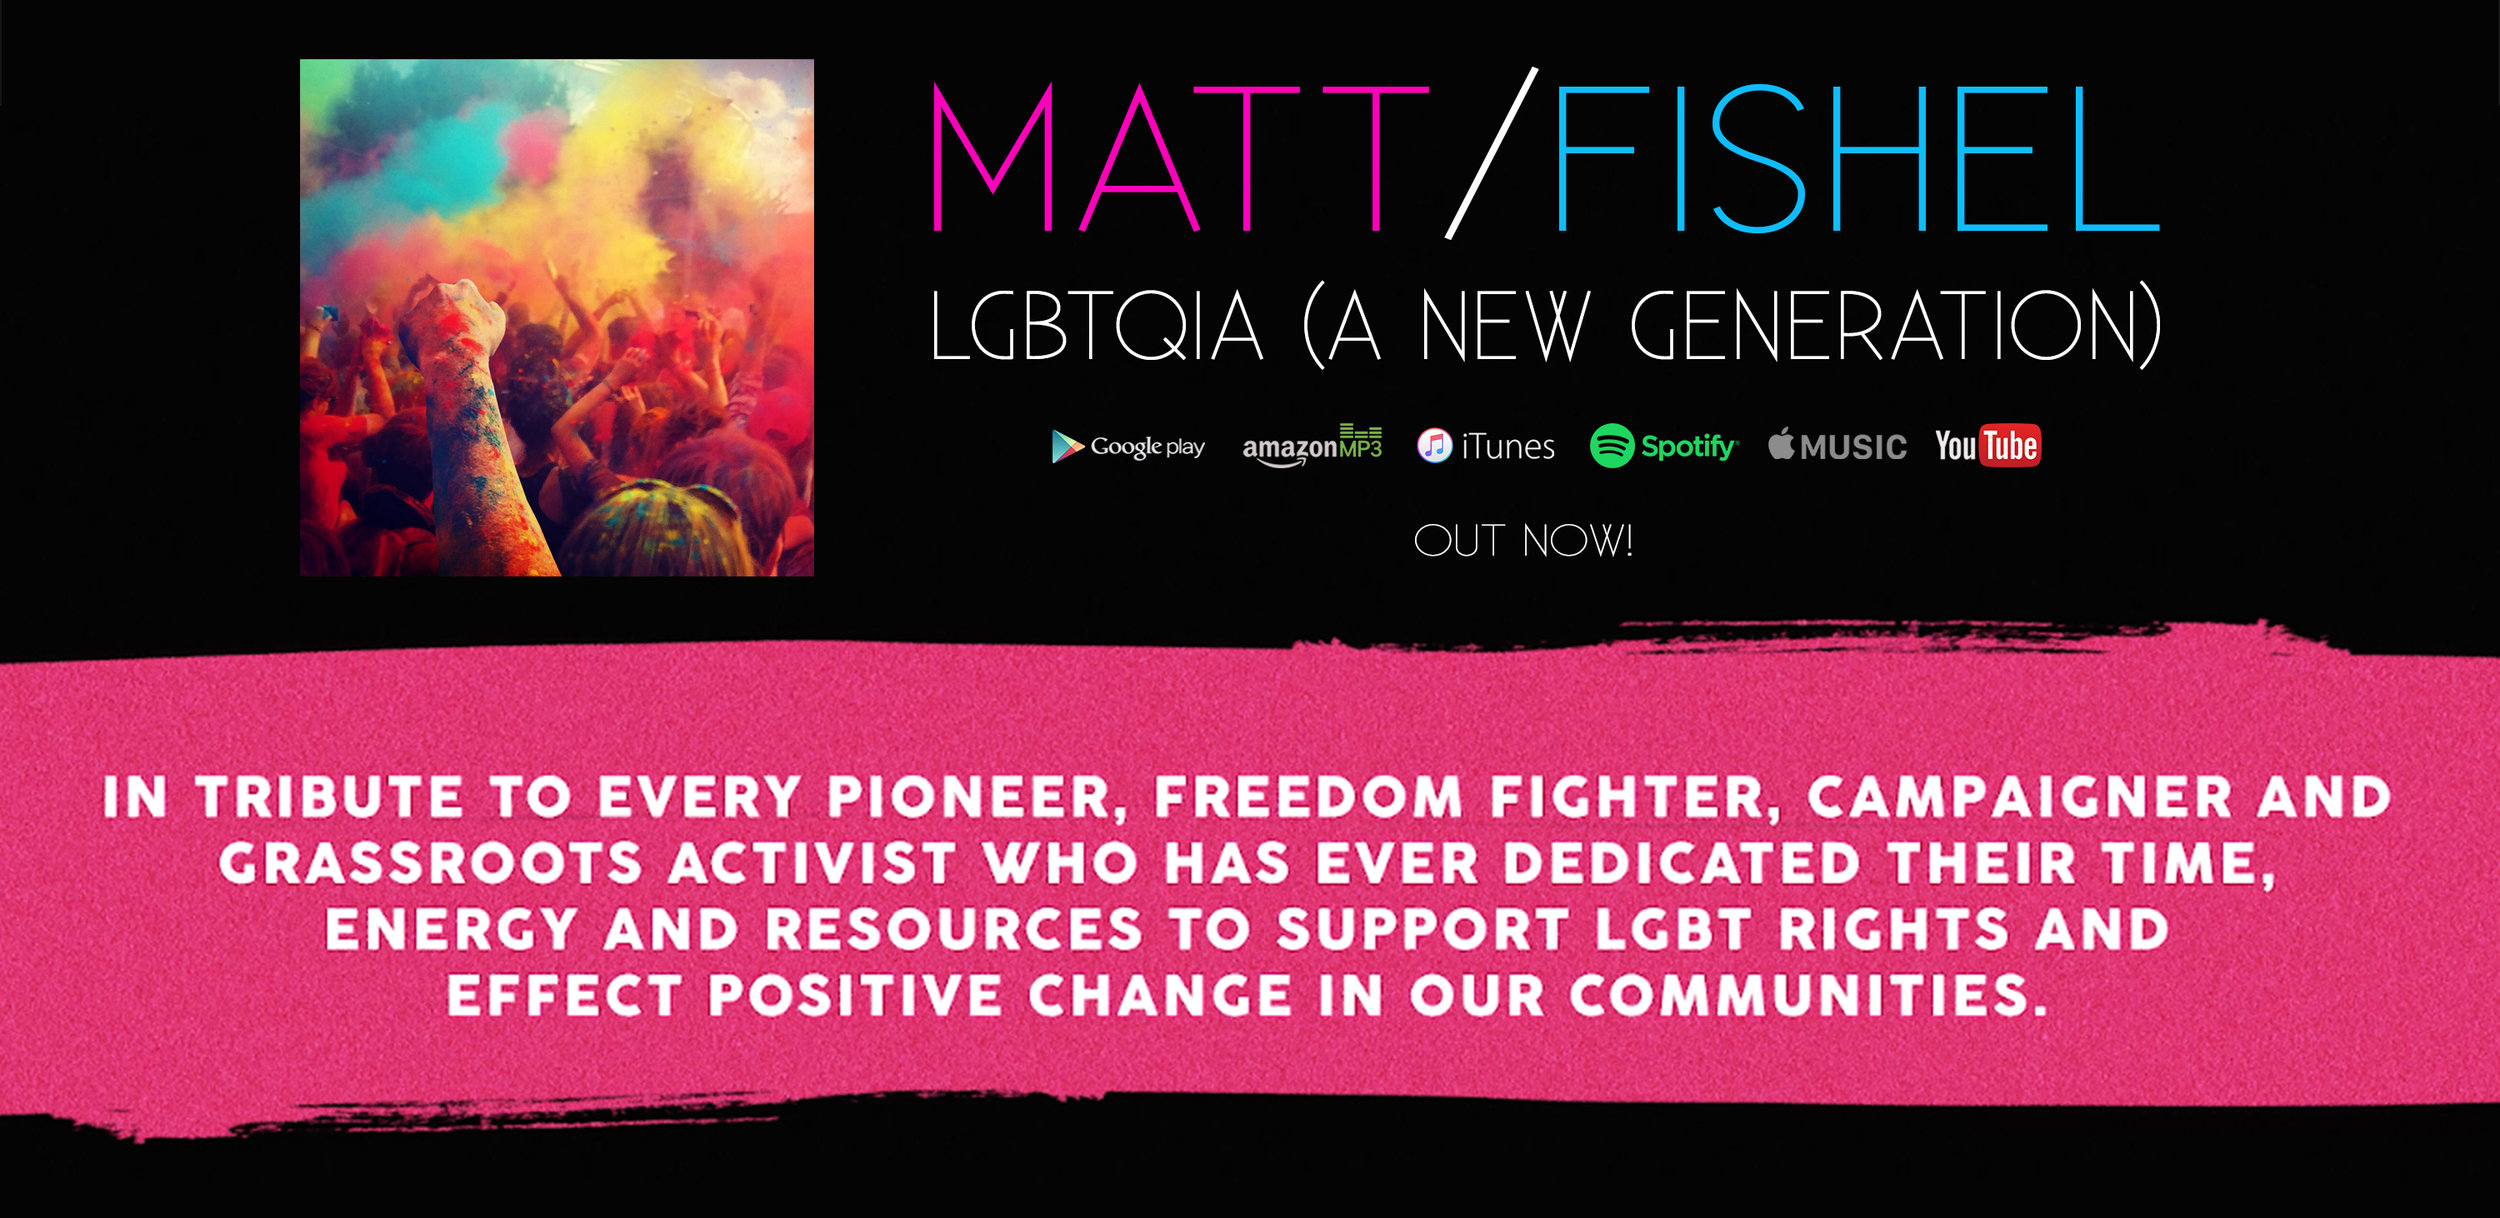 Matt FIshel_LGBTQIA (A New Generation)_Banner.jpg